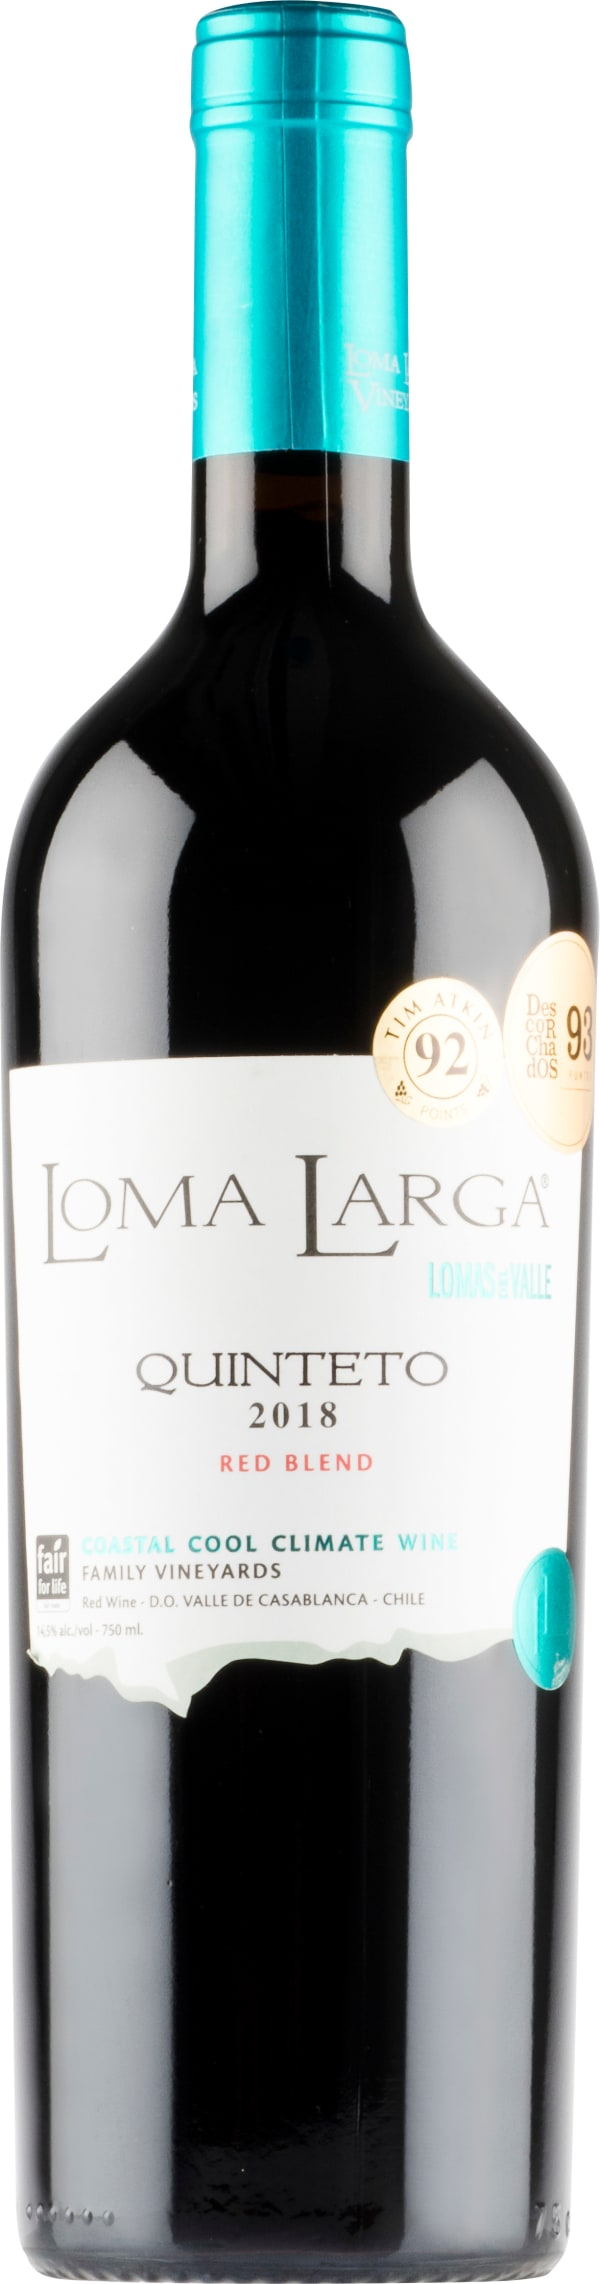 Loma Larga Quinteto Red Blend 2018